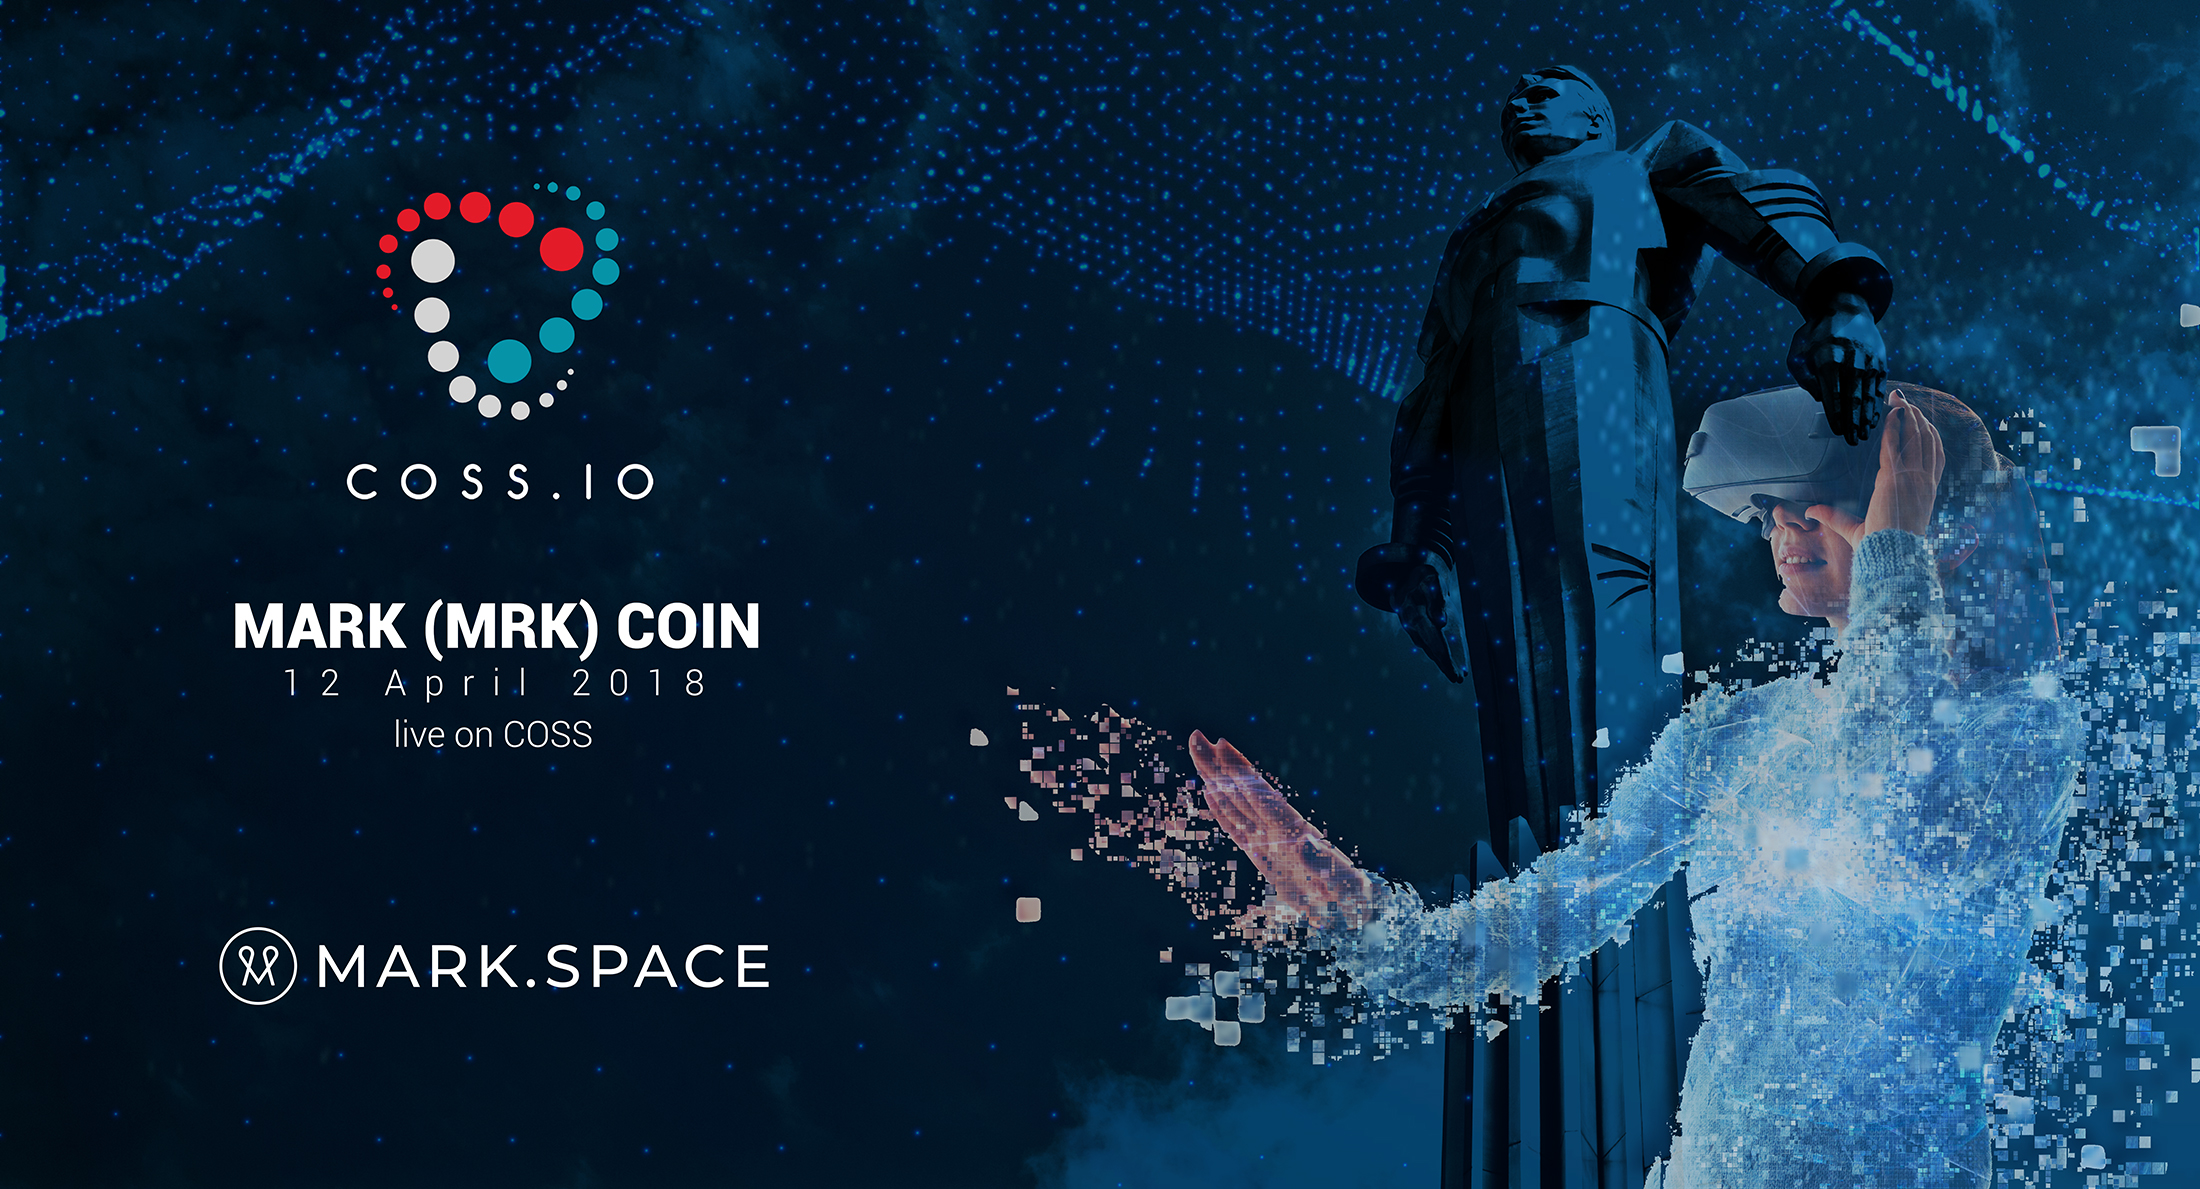 COSS.IO Launches the Trading of MRK-token as the World Celebrates the Human Spaceflight